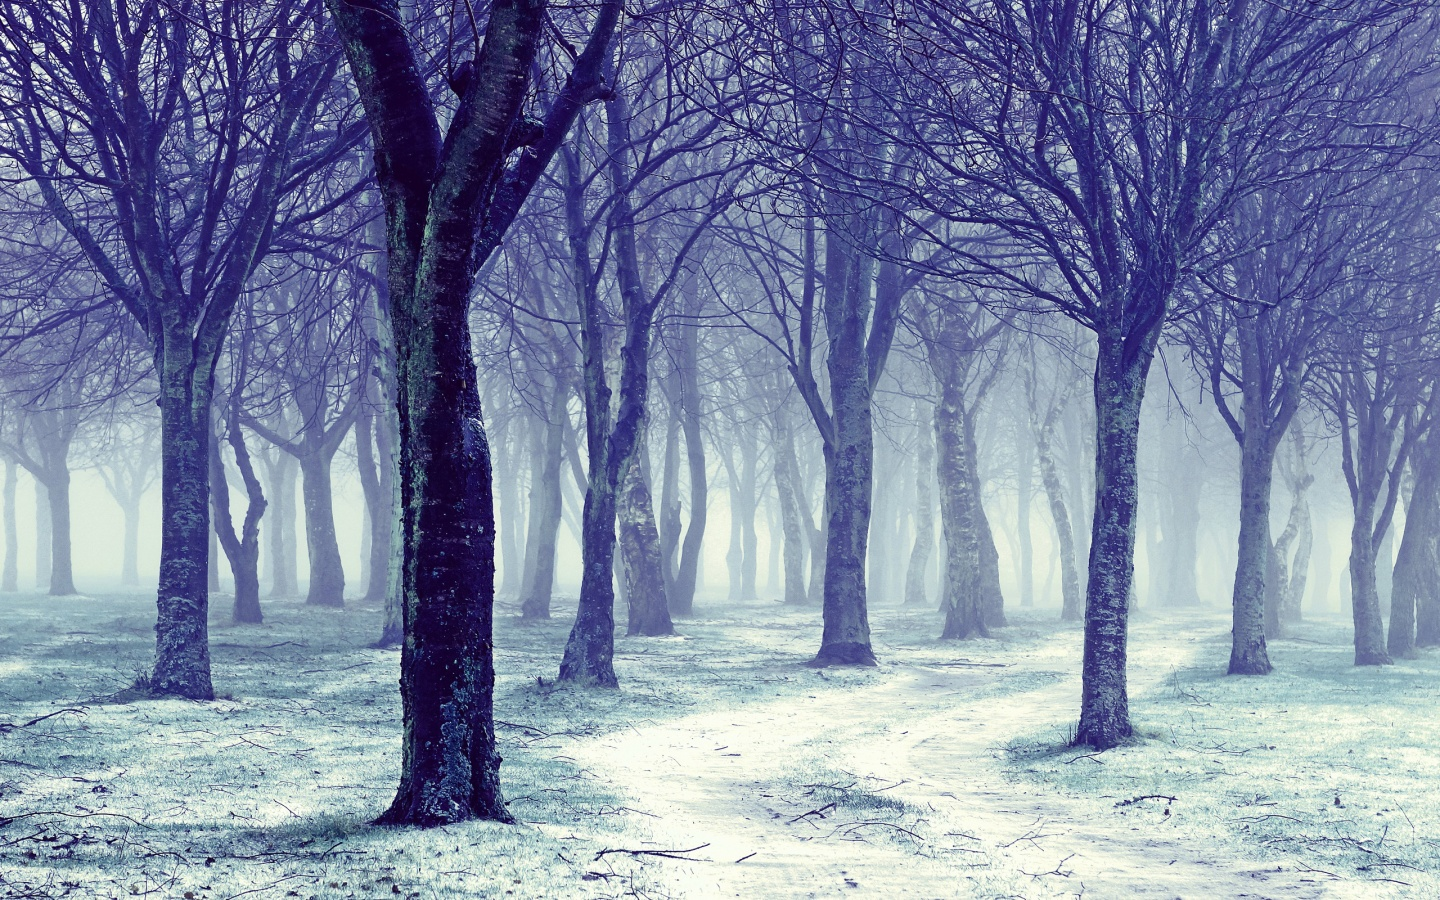 Nature Snowy Winter Forest Trees Wallpapers   1440x900   817260 1440x900